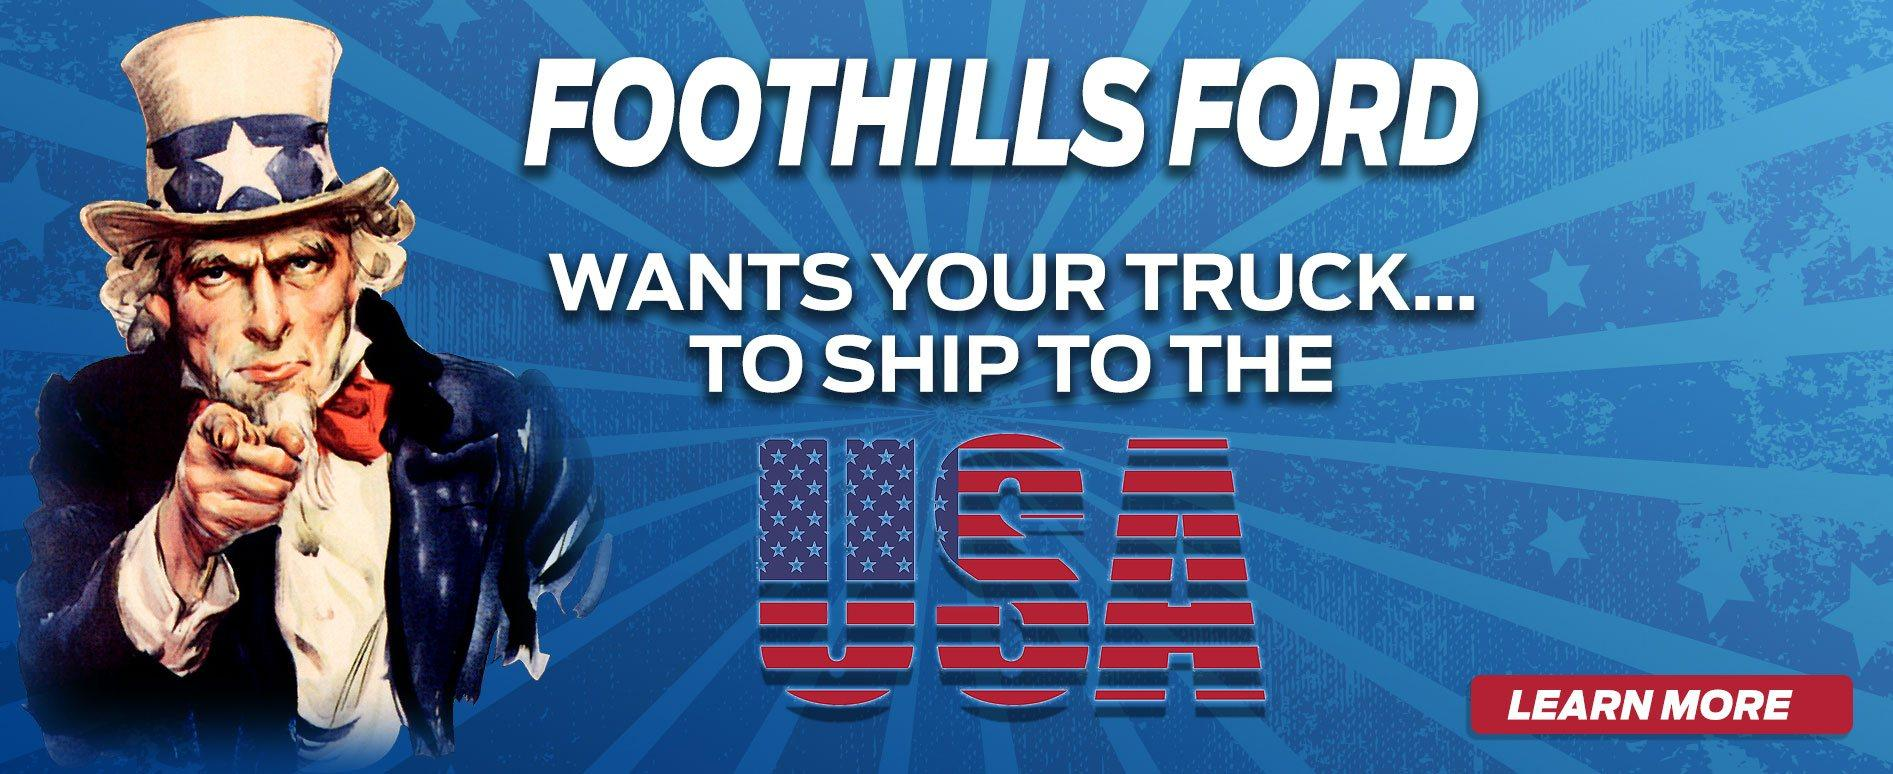 Foothills Ford Wants Your Vehicle To Ship To The U.S.